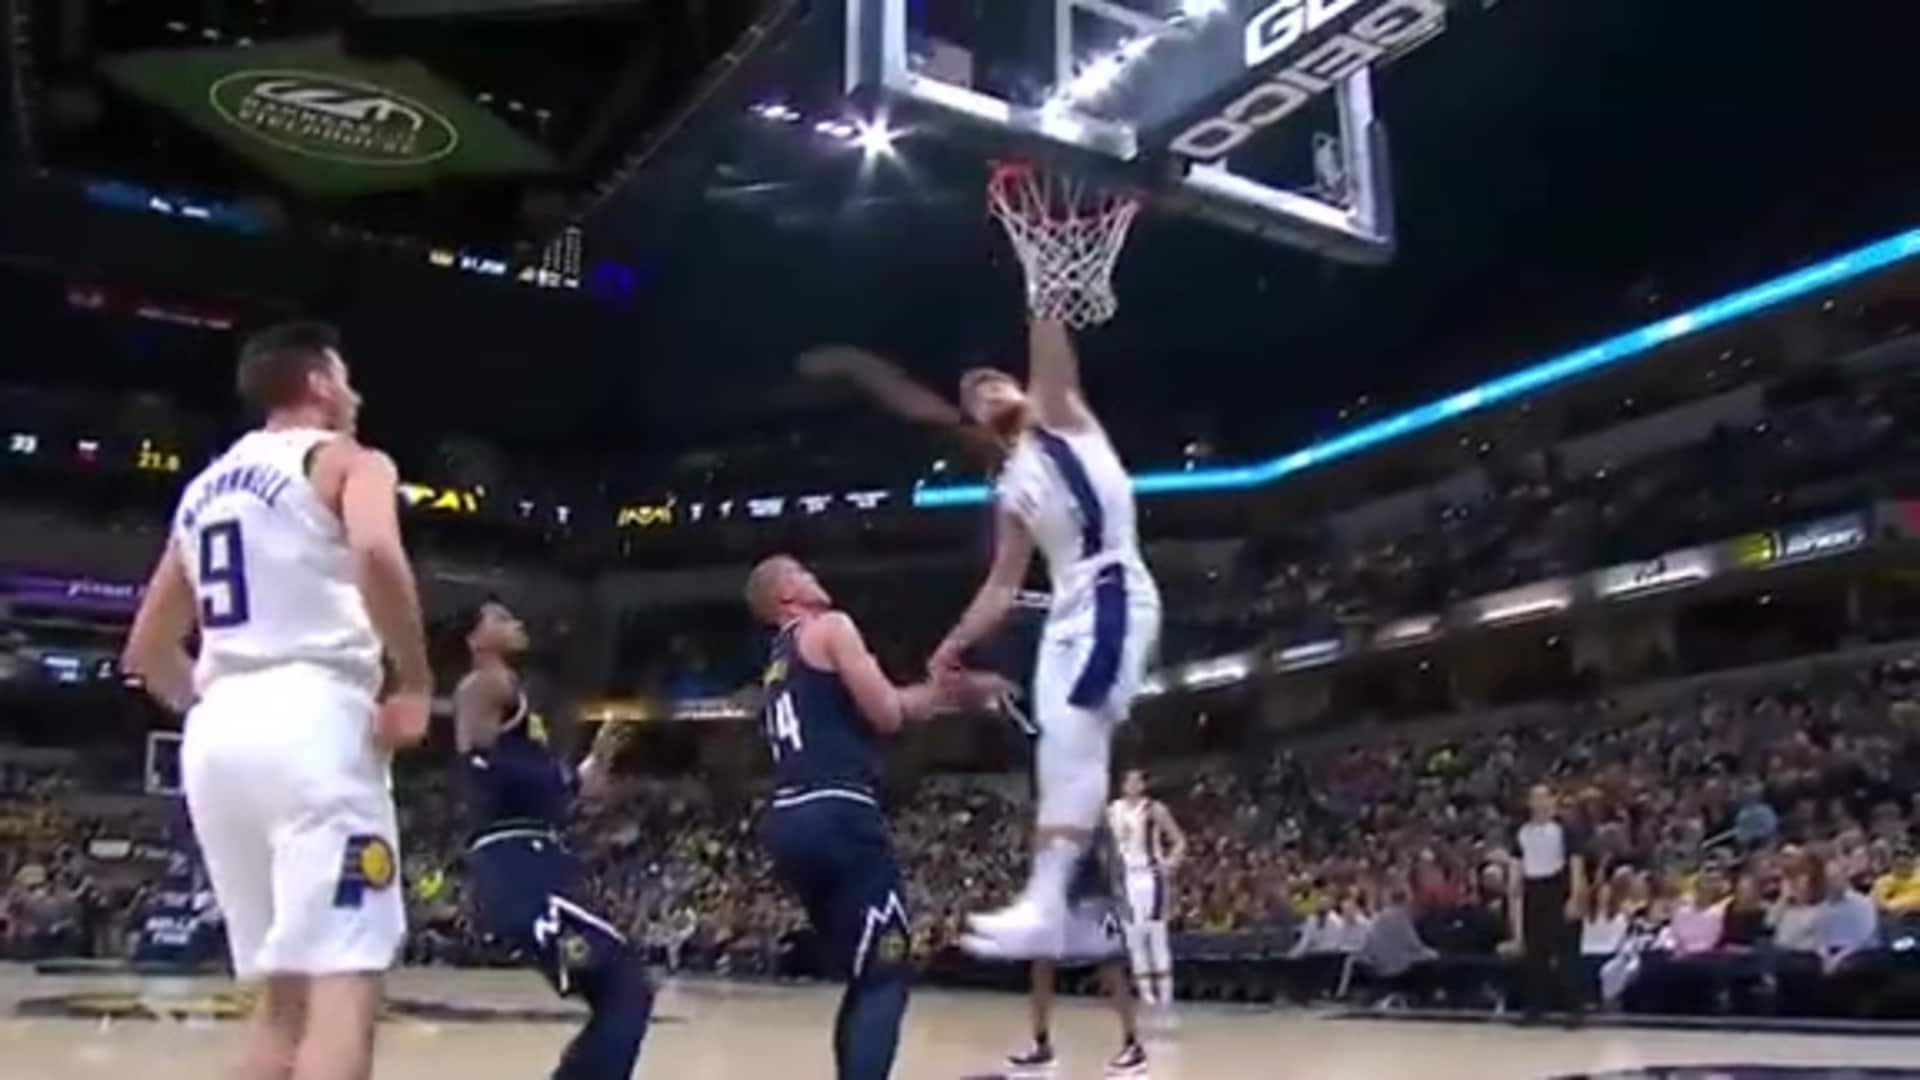 Highlights: Domantas Sabonis' All-Star Season